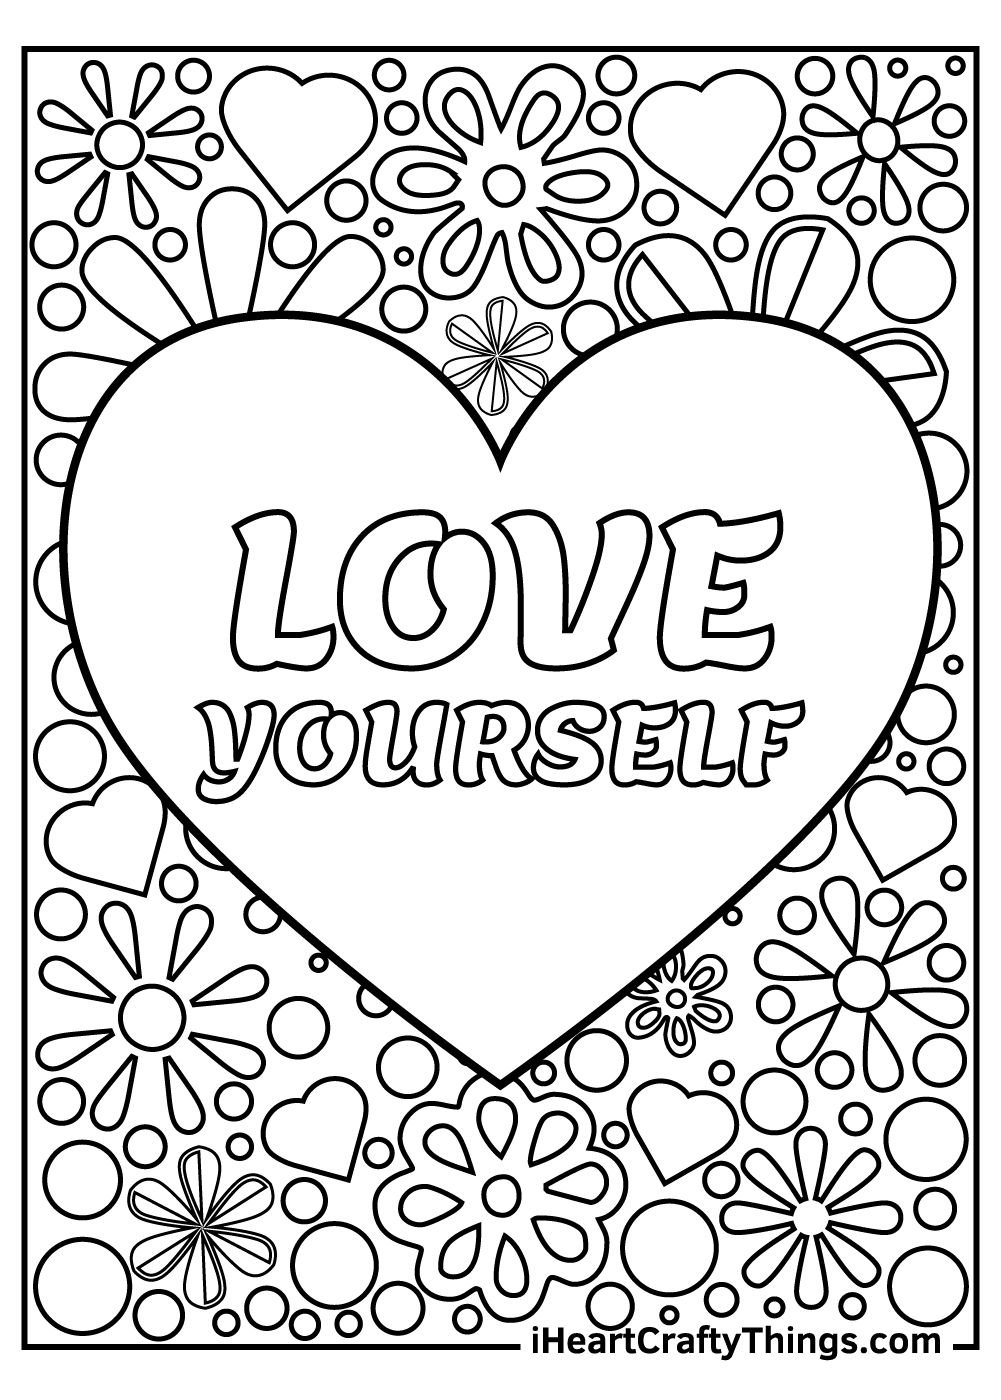 love yourself stress relief coloring pages free printable